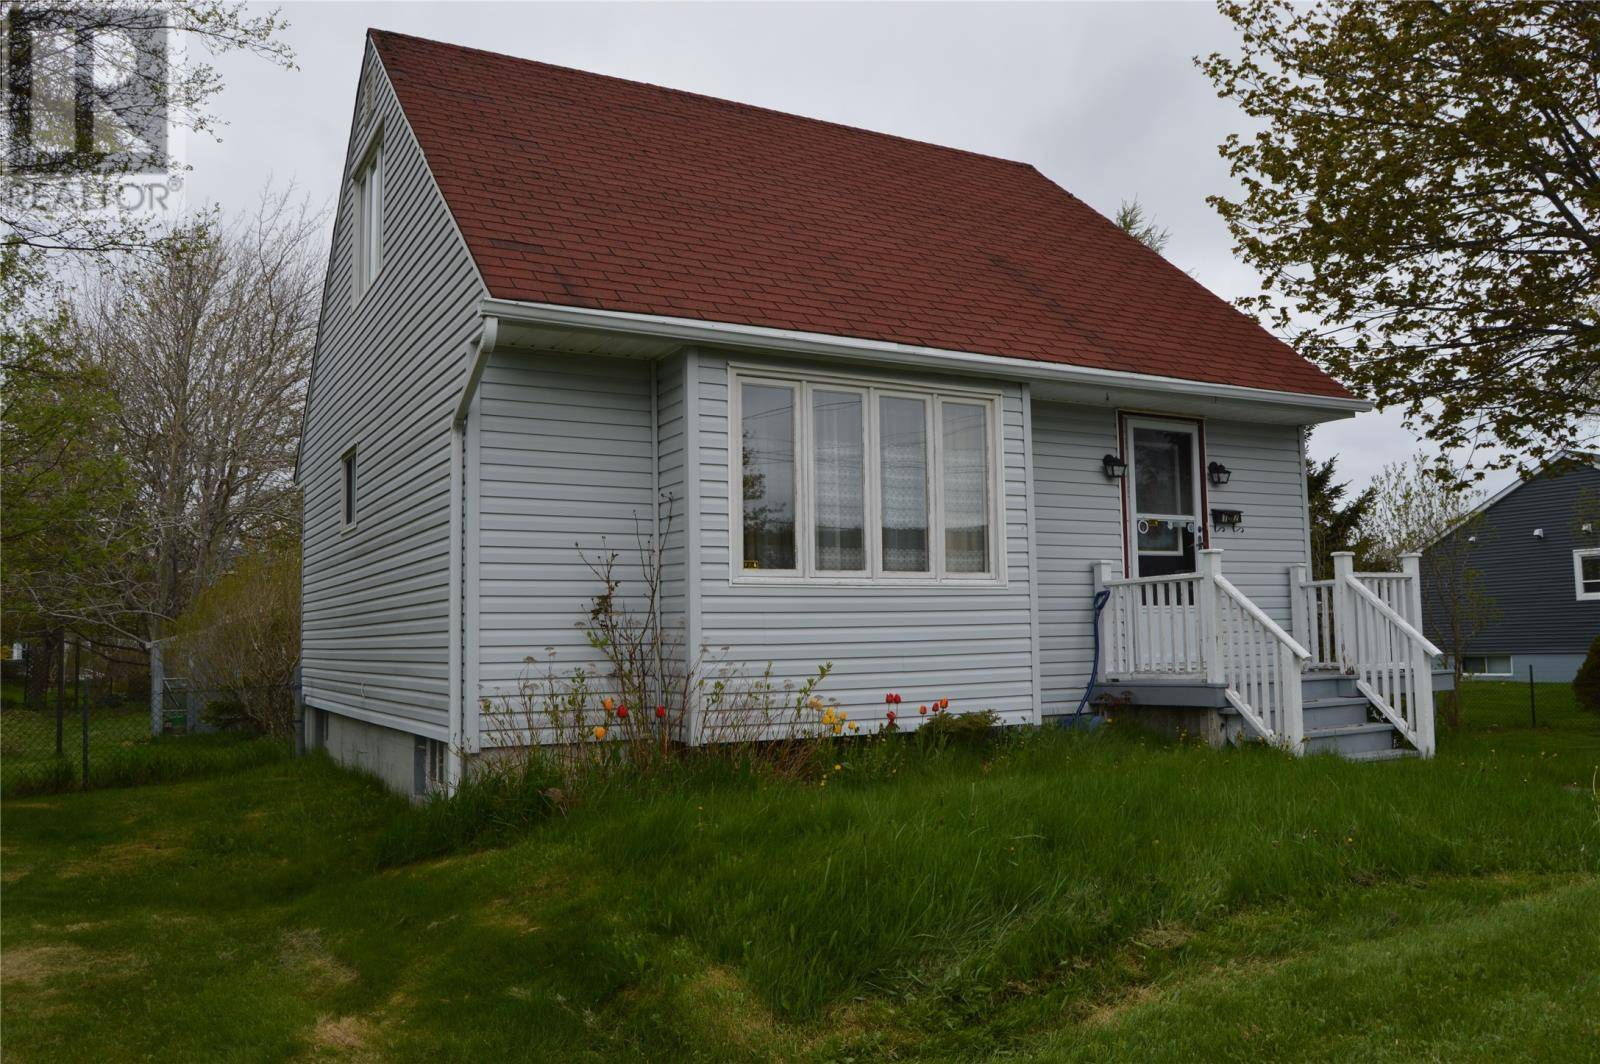 House for sale at 12 Waterford Ht South St. John's Newfoundland - MLS: 1208919